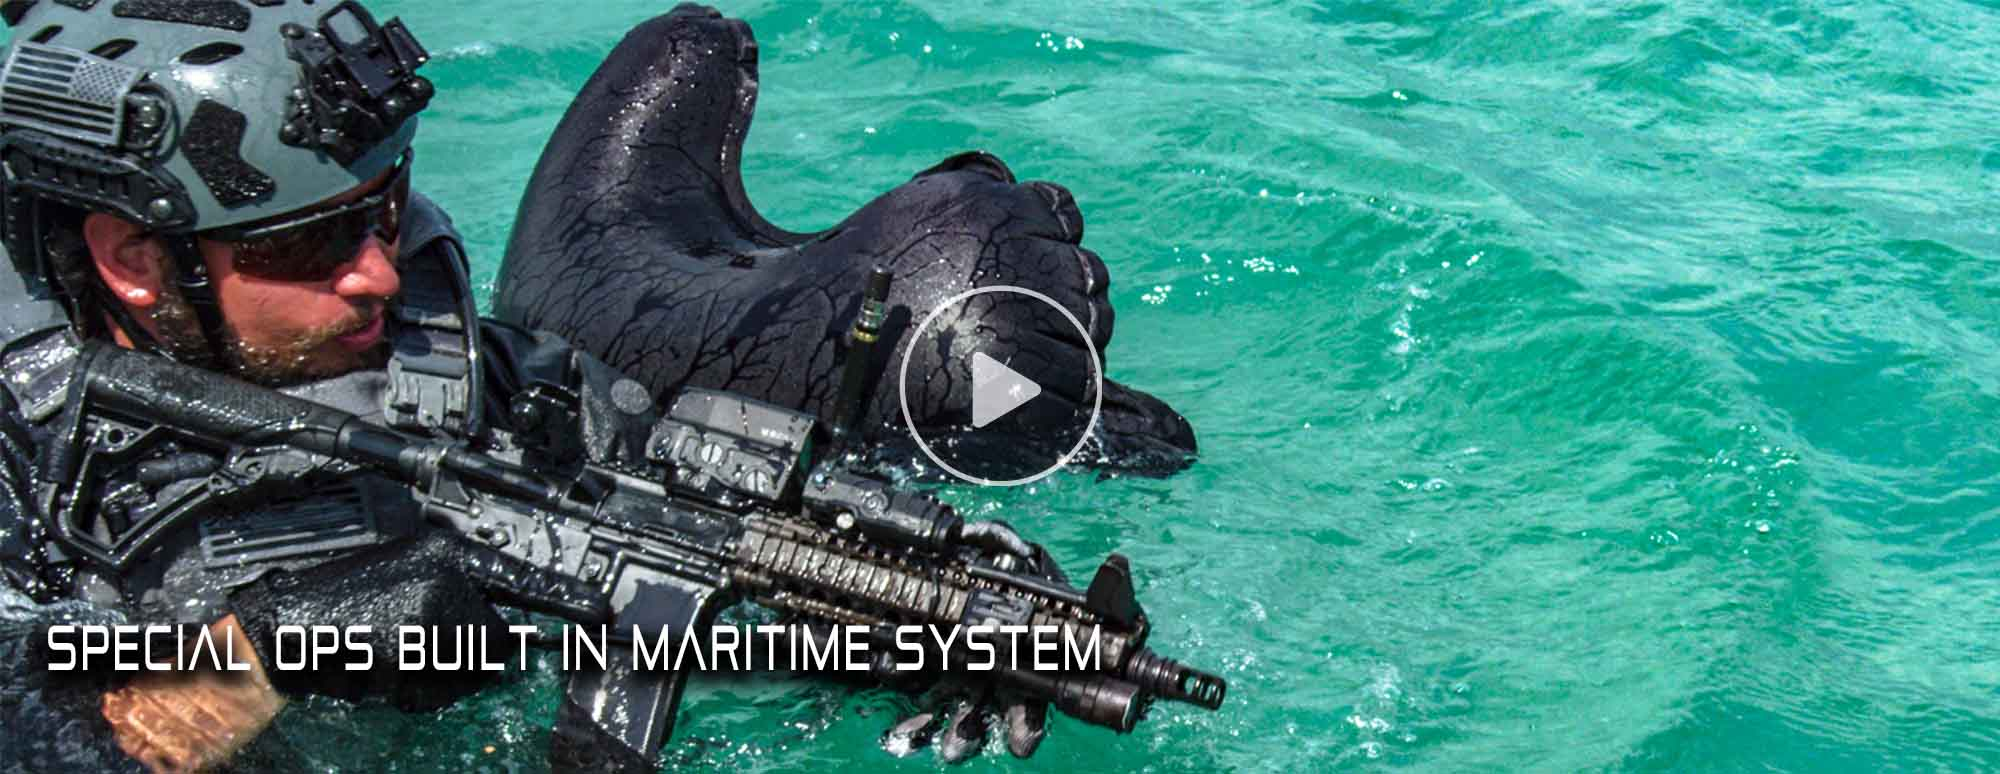 Special Ops Built In Maritime System